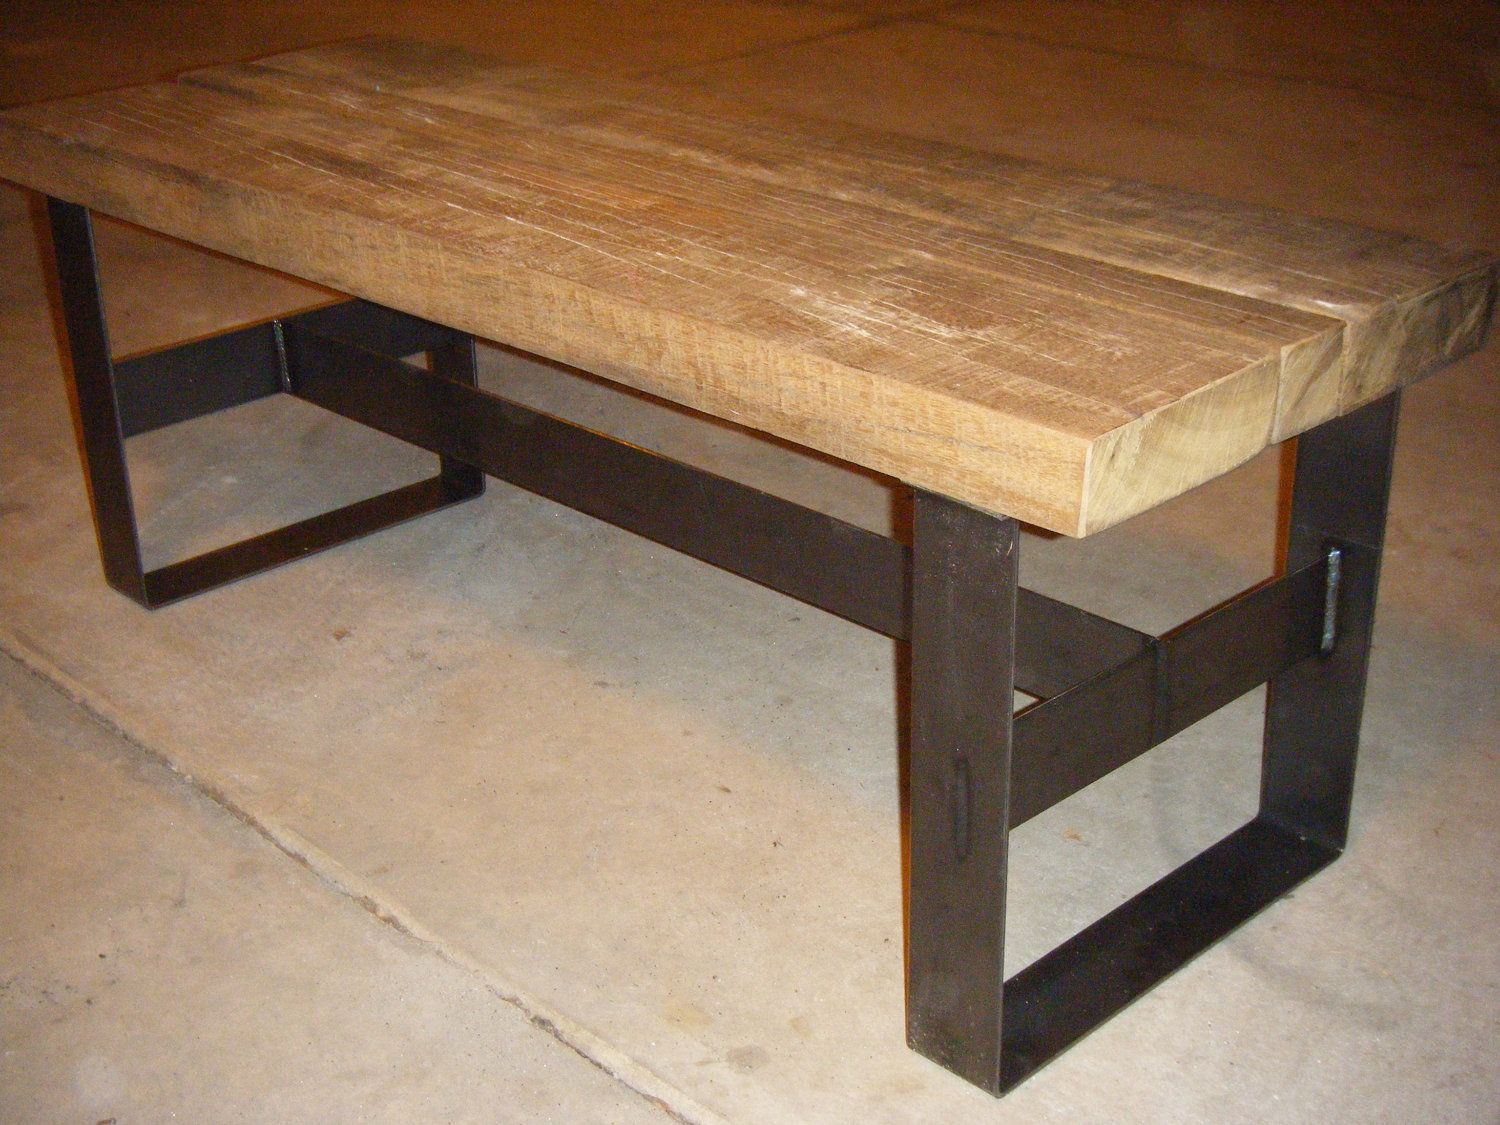 Reclaimed wood and steel Reclaimed wood and